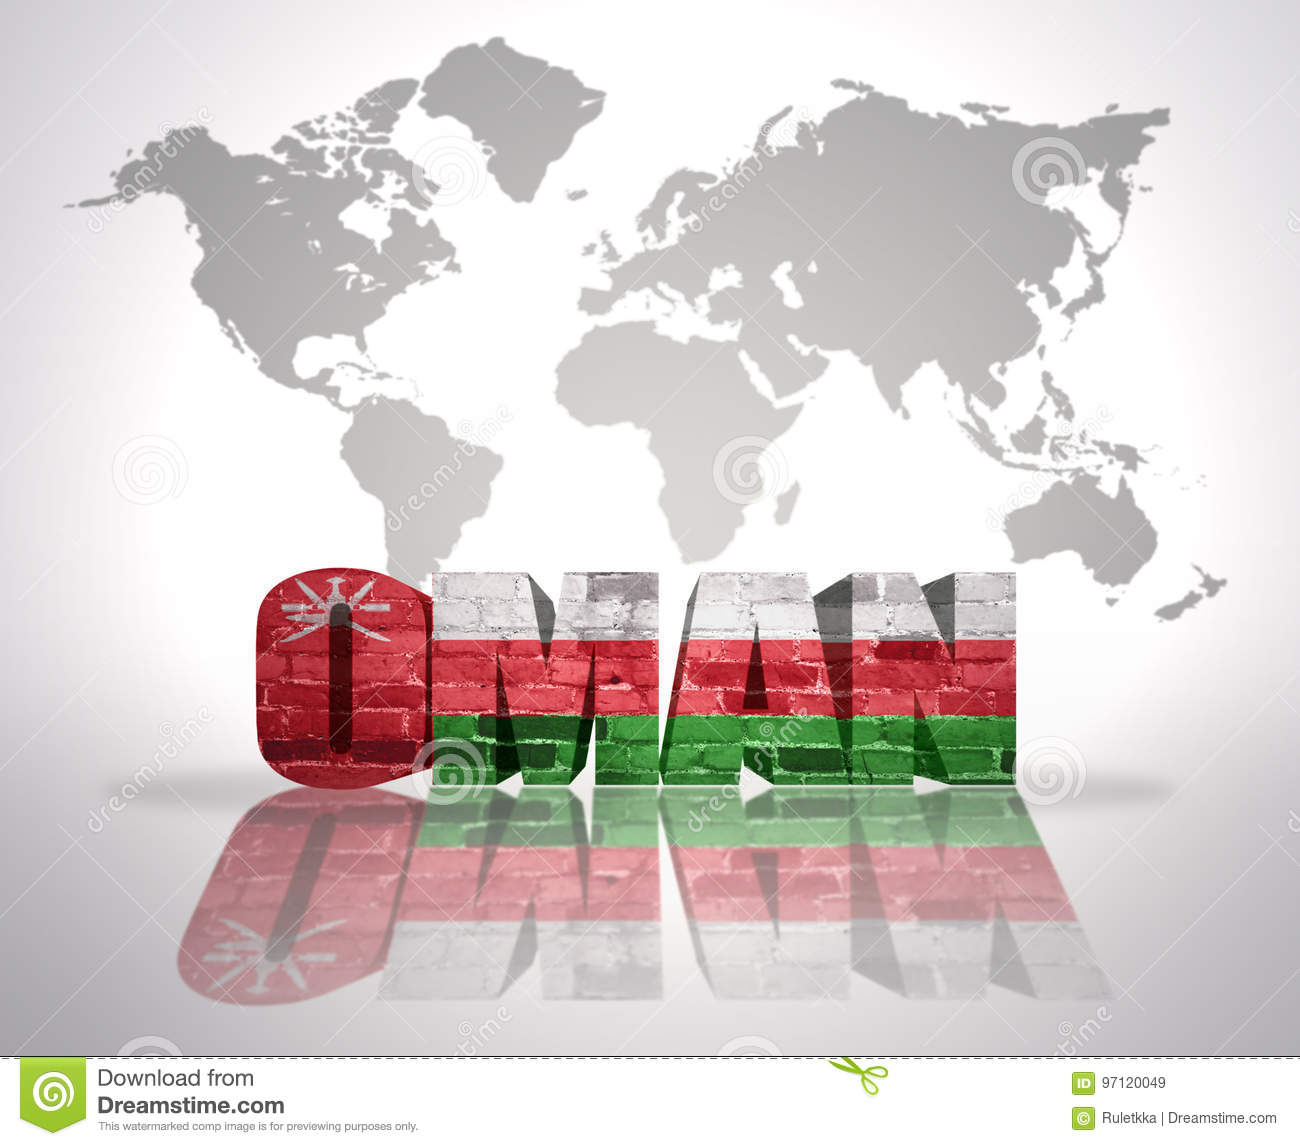 Word oman on a world map background stock illustration word oman with omani flag on a world map background gumiabroncs Gallery